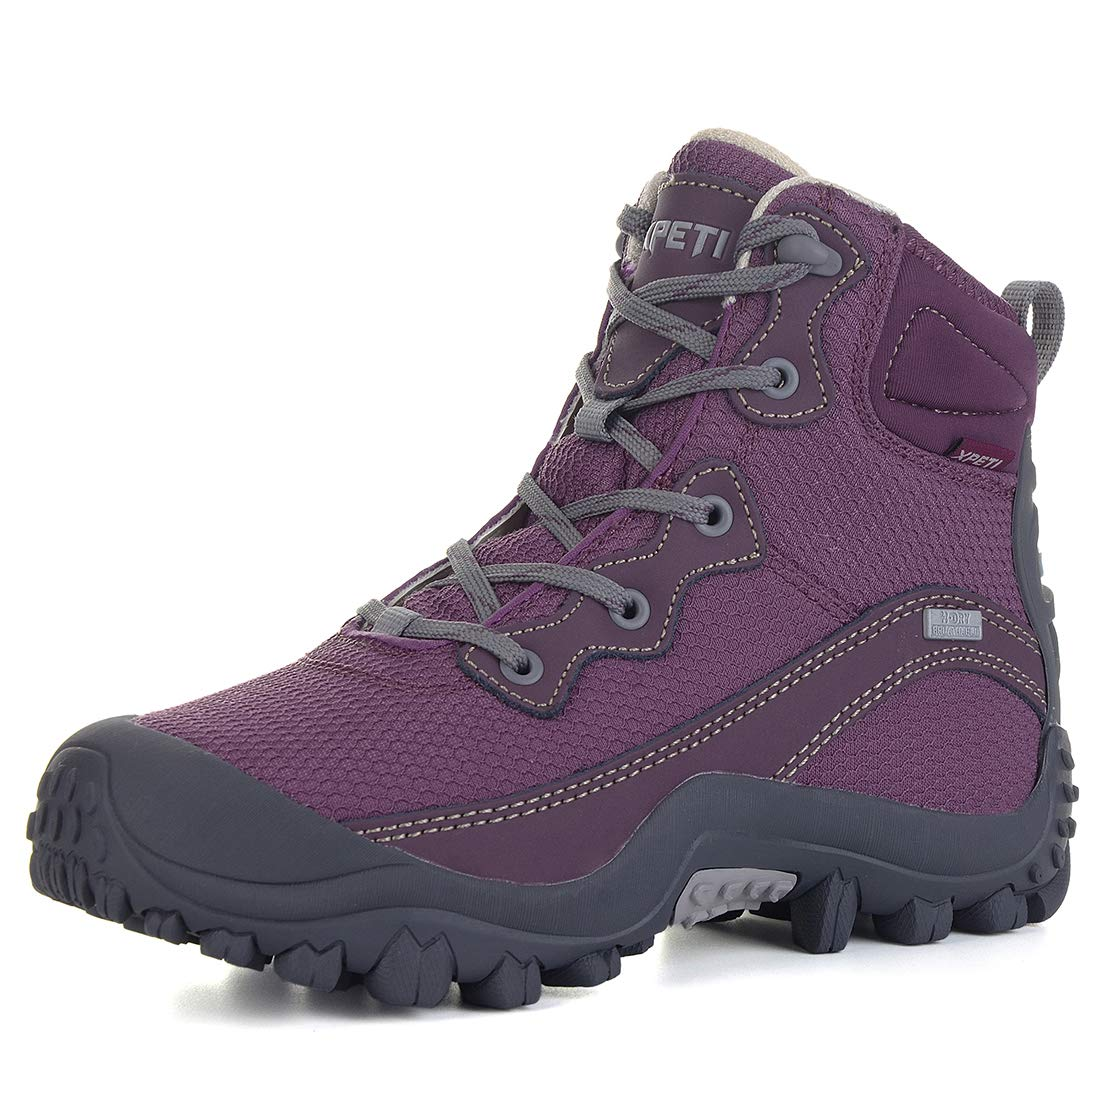 XPETI Women's Dimo Mid Waterproof Hiking Outdoor Boot (7 B(M) US, Purple) by XPETI